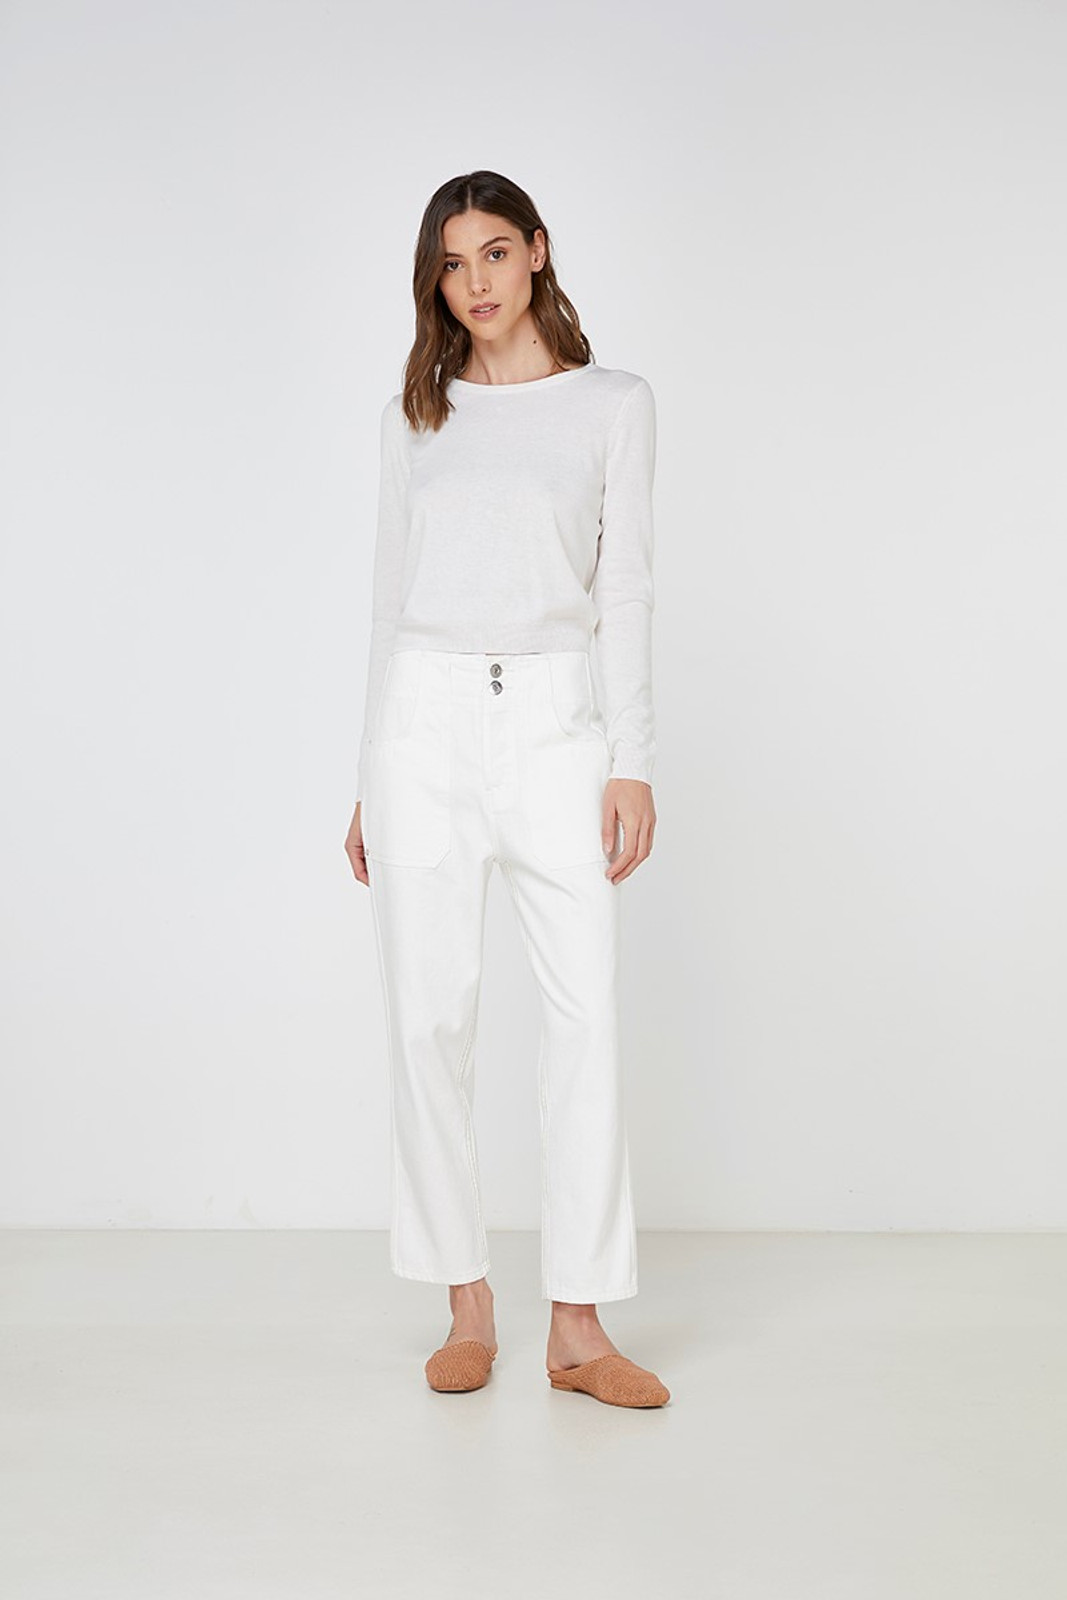 Elka Collective Gale Knit White  4